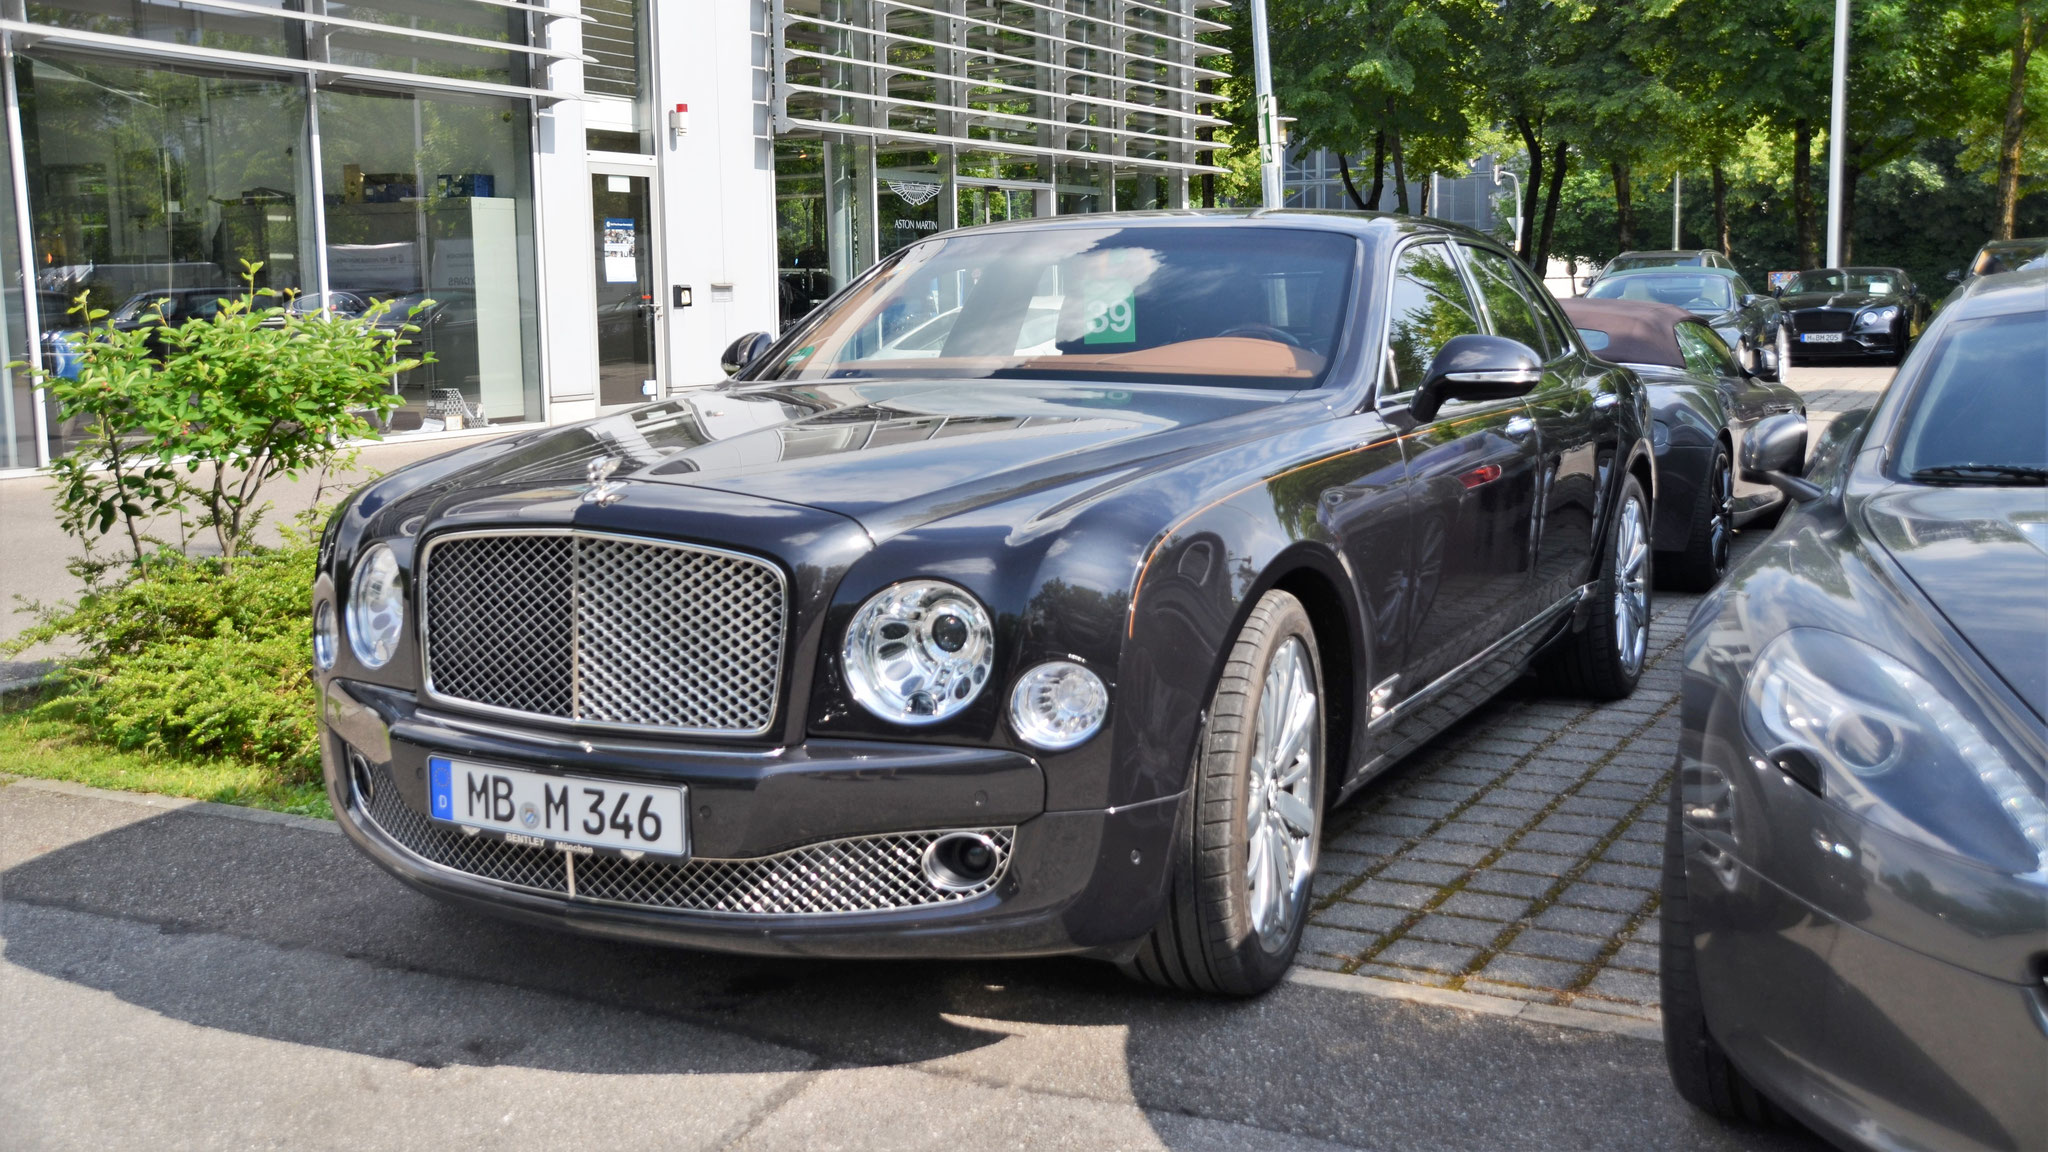 Bentley Mulsanne - MB-M-346